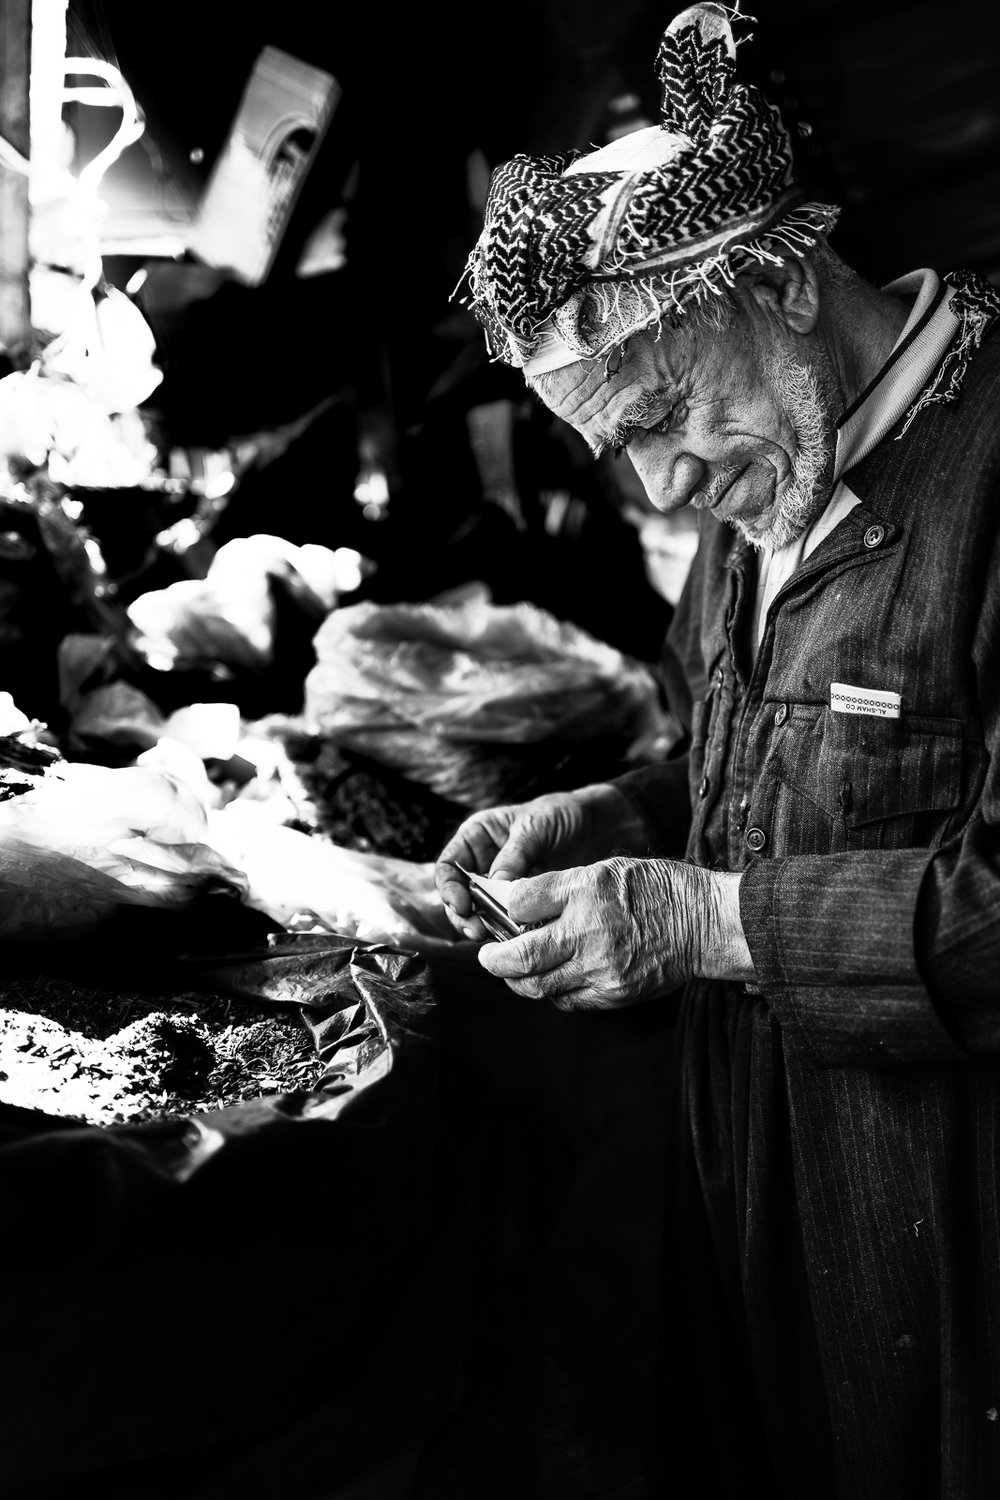 A man is making a cigarette in the Erbil bazaar